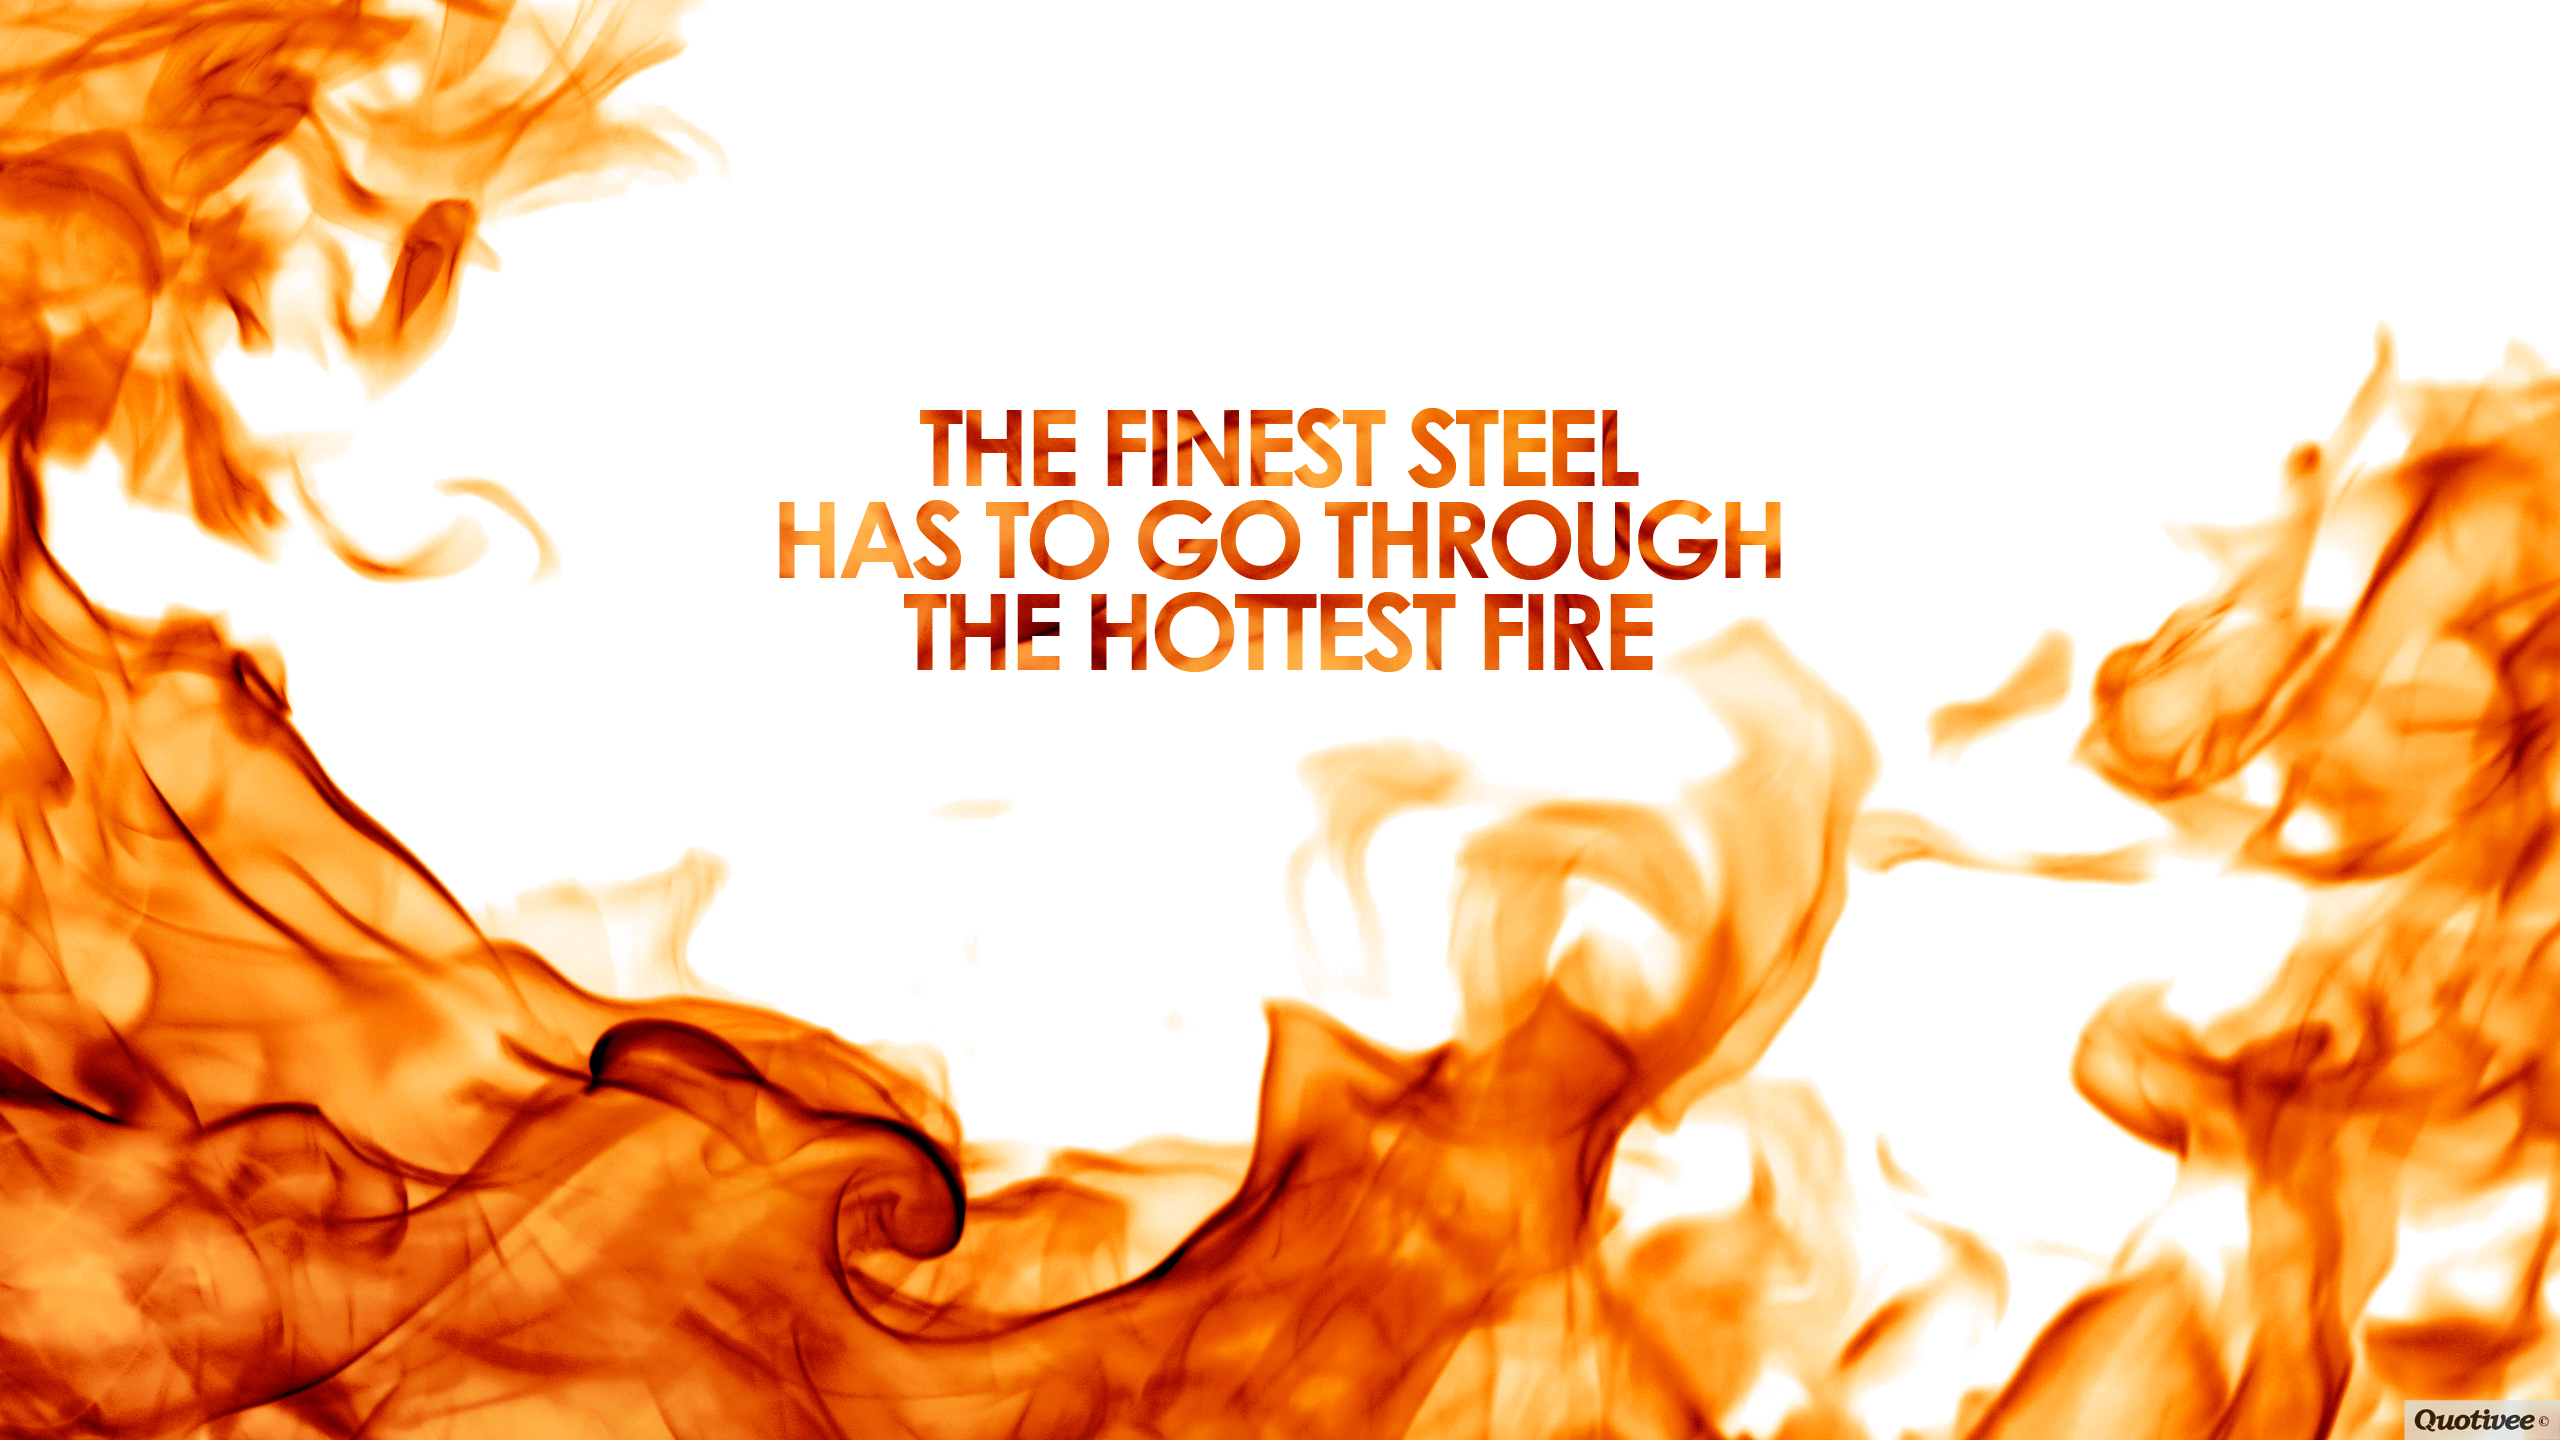 quotivee_2560x1440_the finest steel has to go through the hottest fire